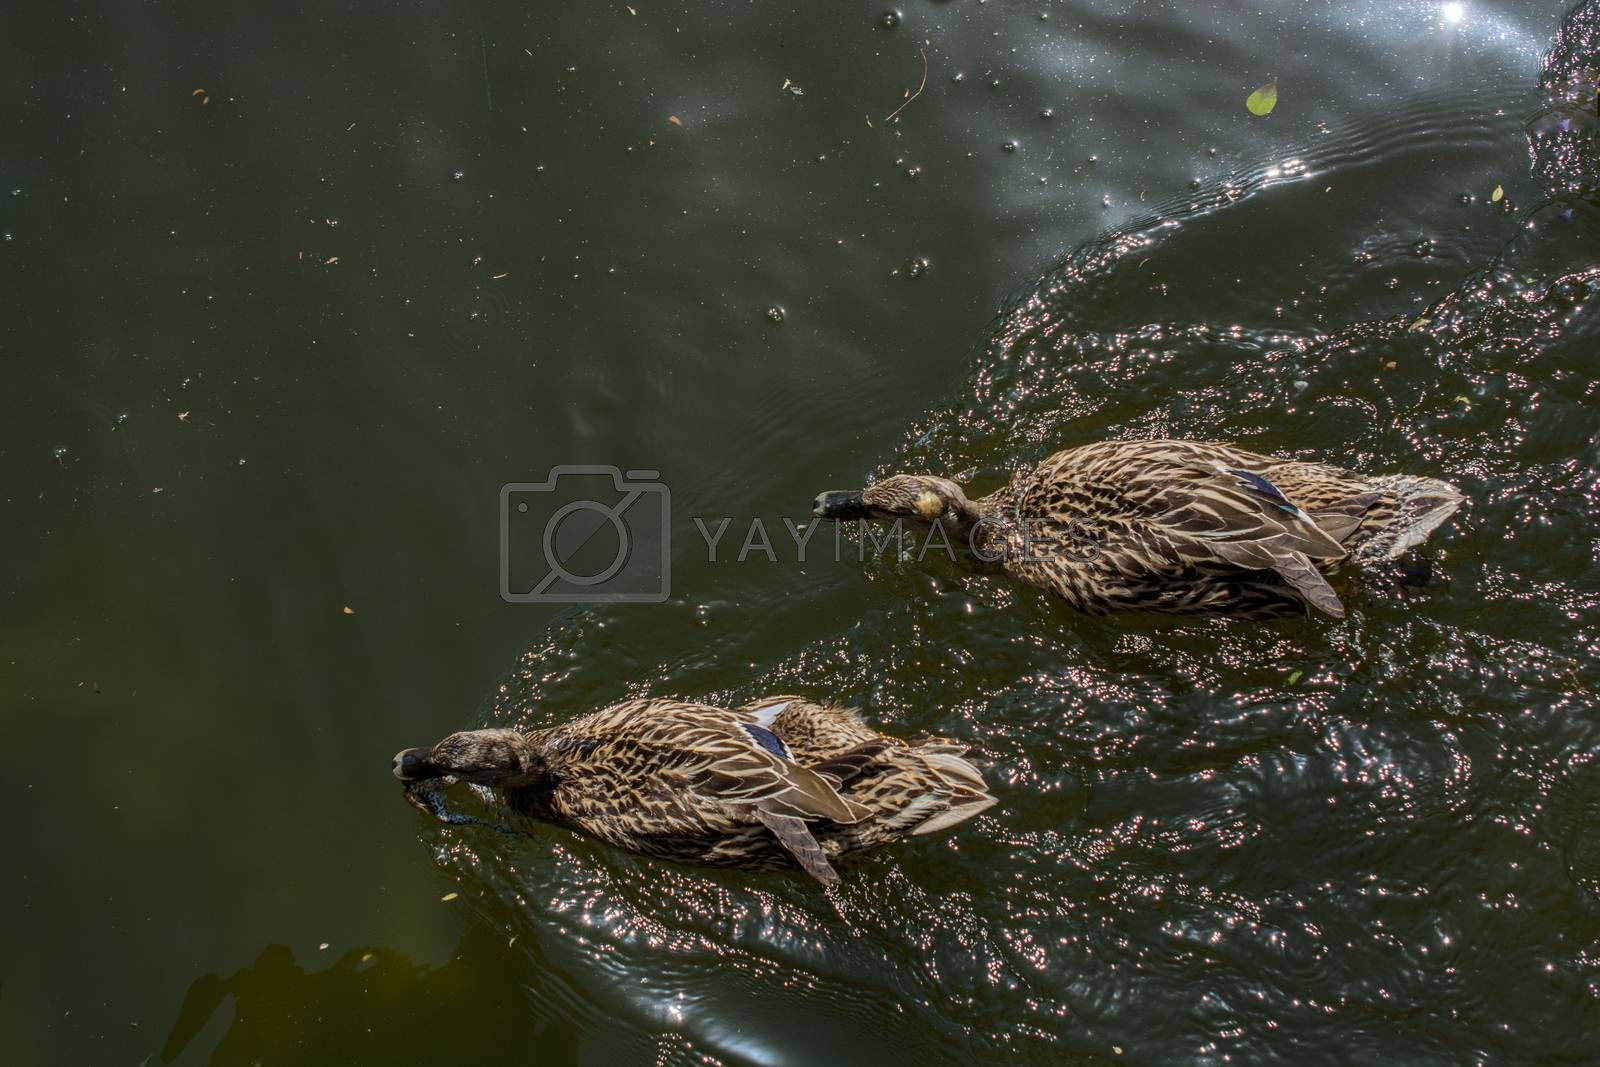 Wild ducks swimming in the waters of the pond